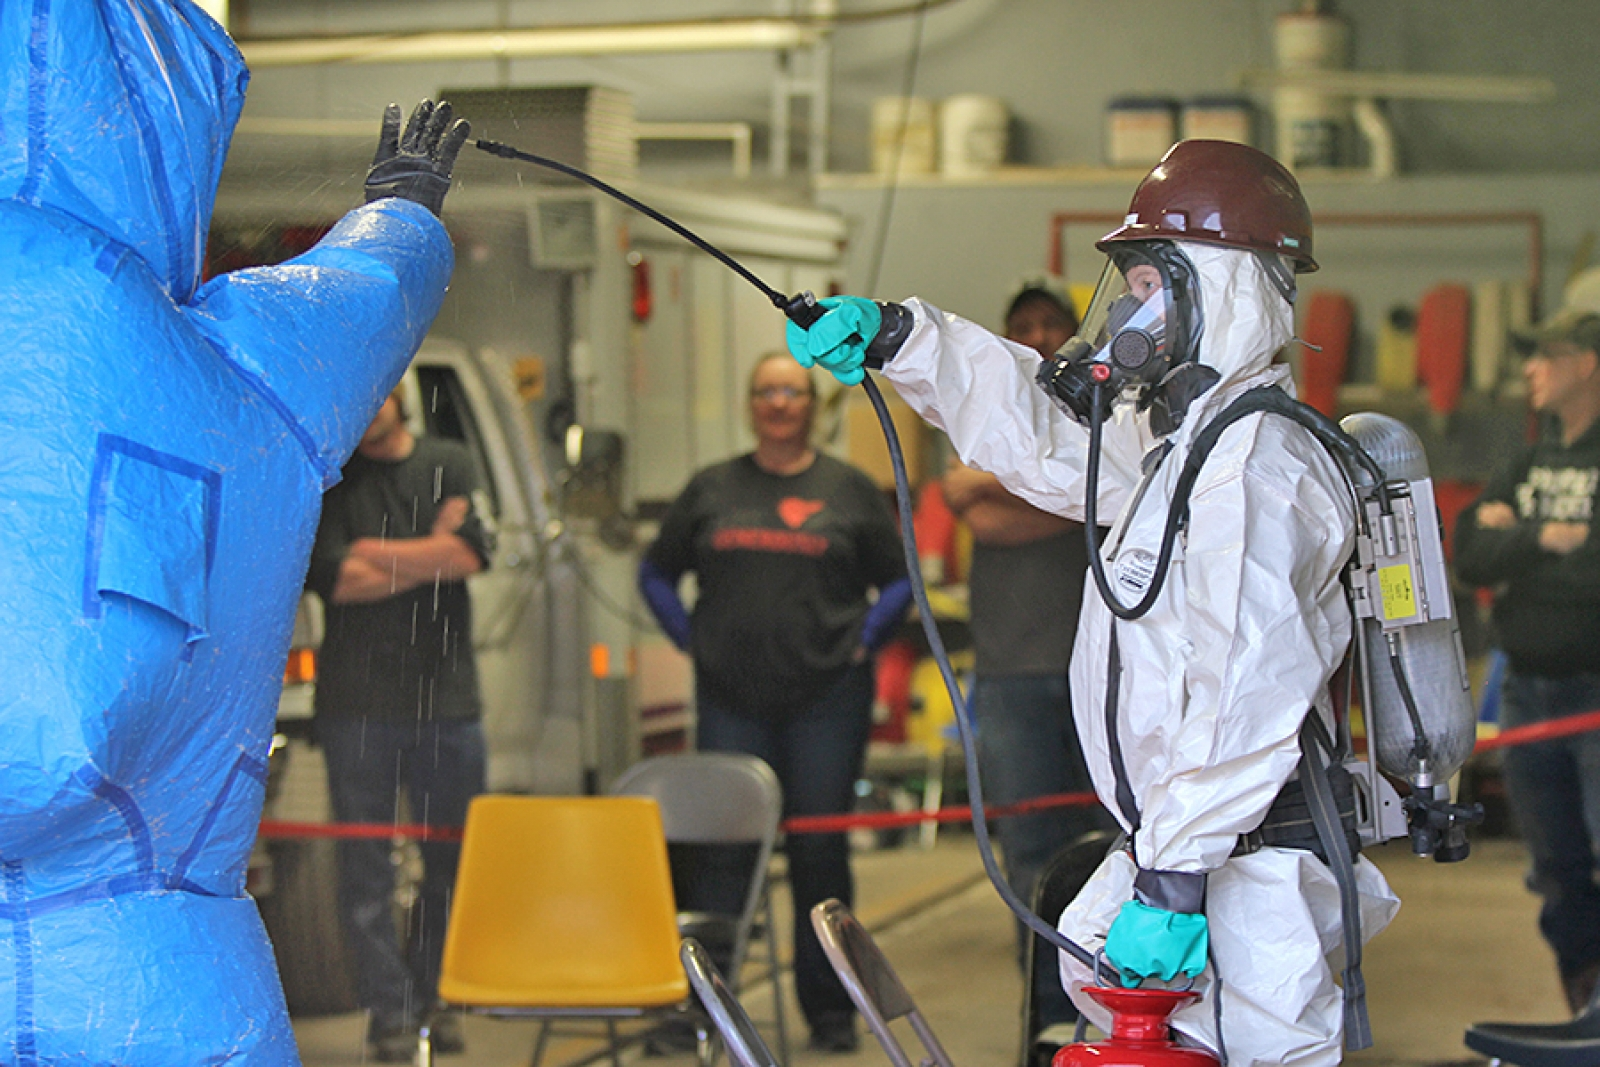 Gordon Firefighters participate in Decon training for chemical spill